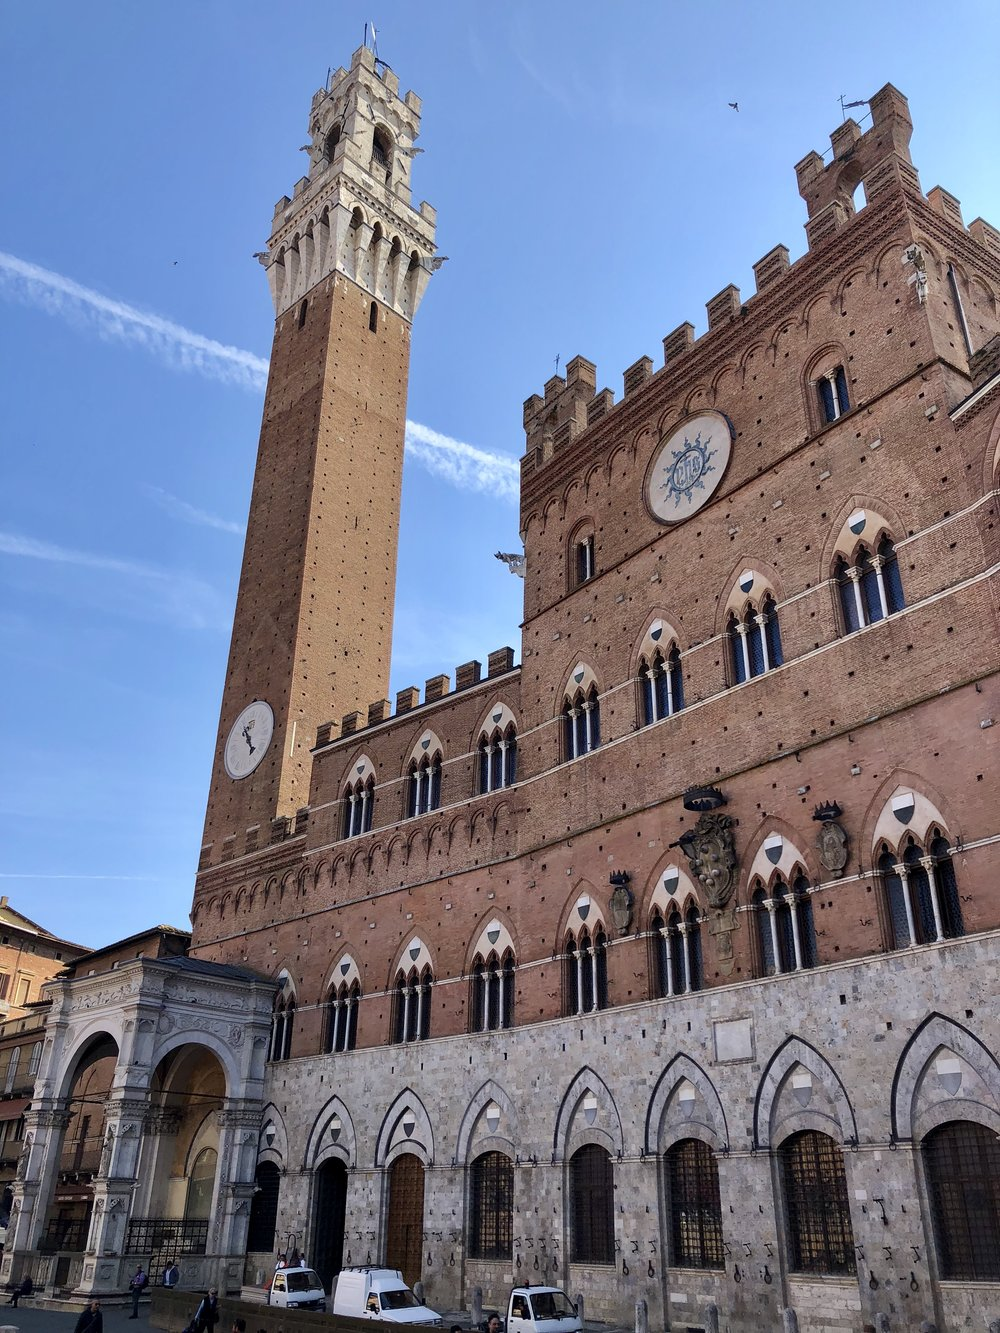 The Piazza del Campo.